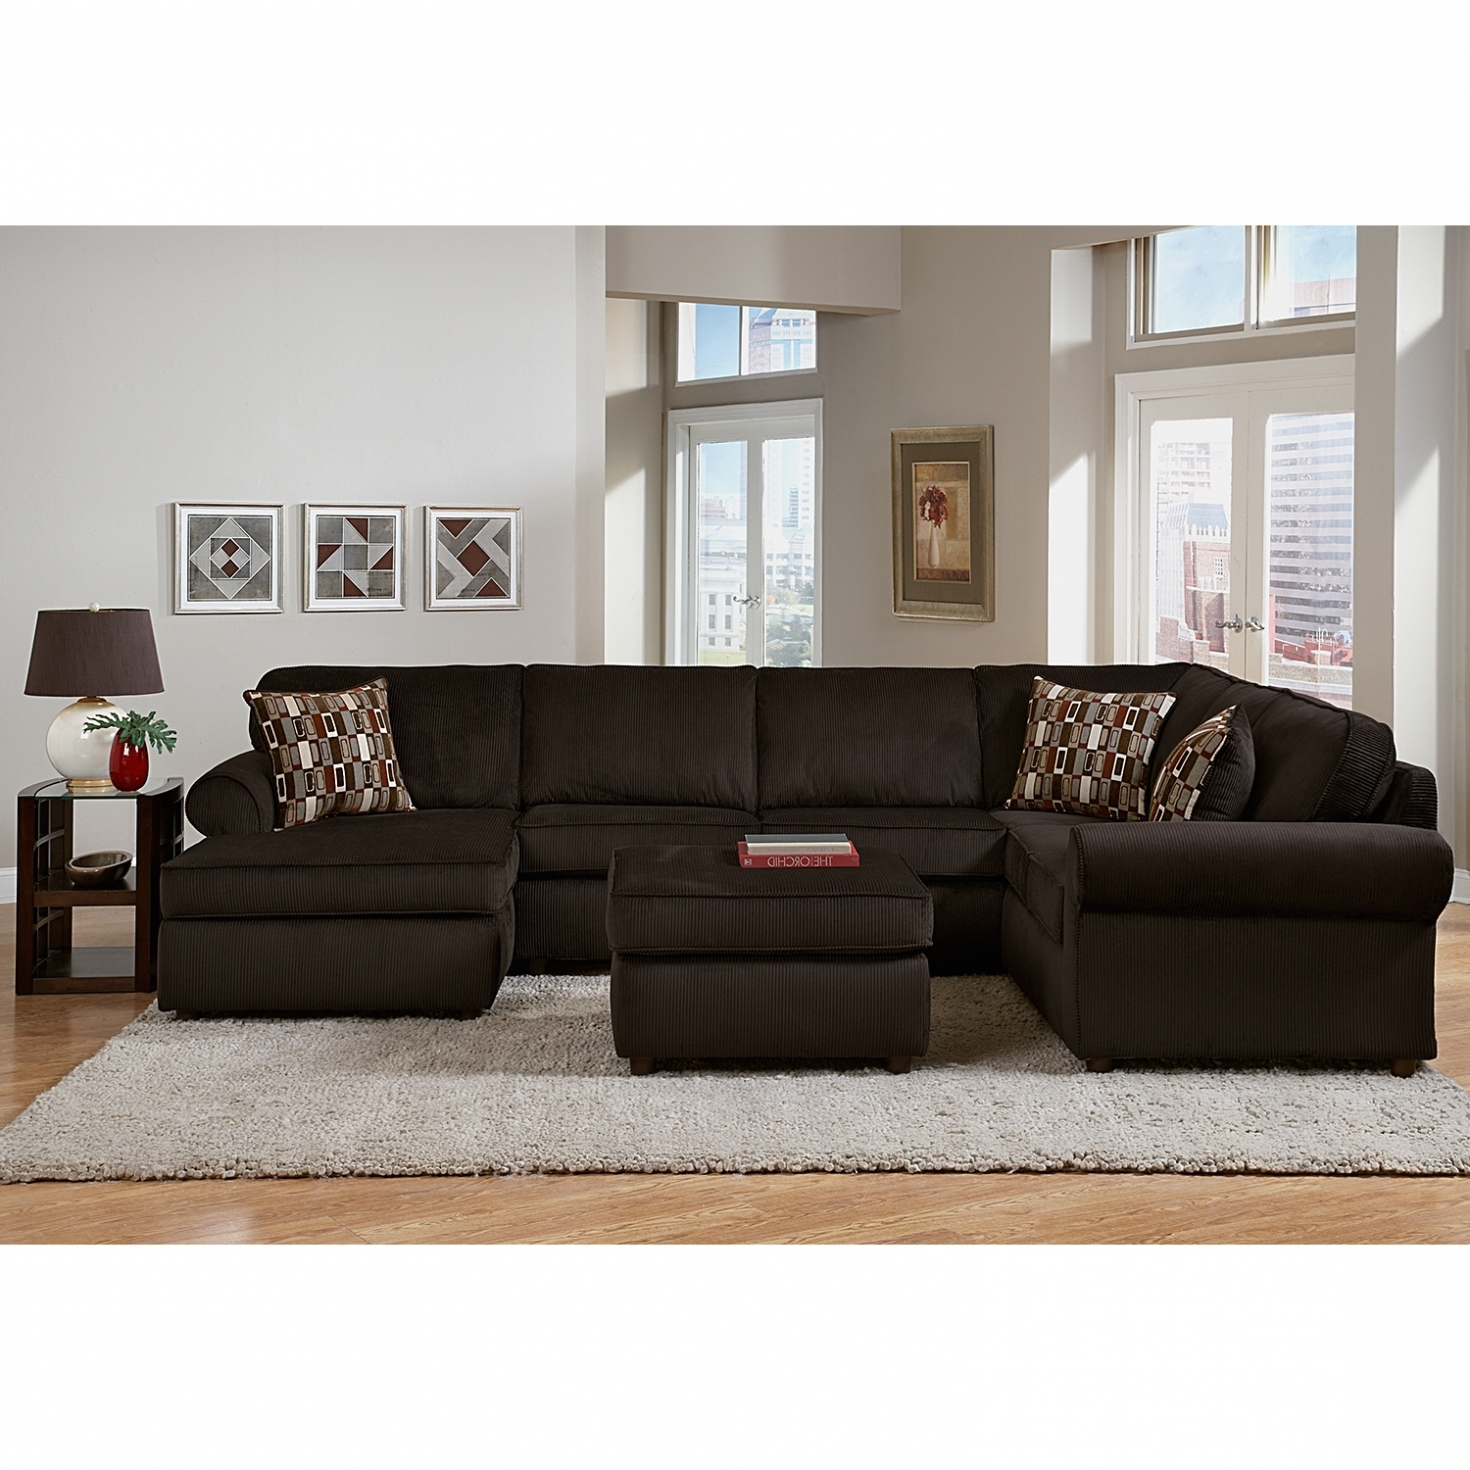 Value City Sectional Sofas Regarding Fashionable Furniture: New Value City Sectional Sofa 32 For Living Room Sofa (View 18 of 20)